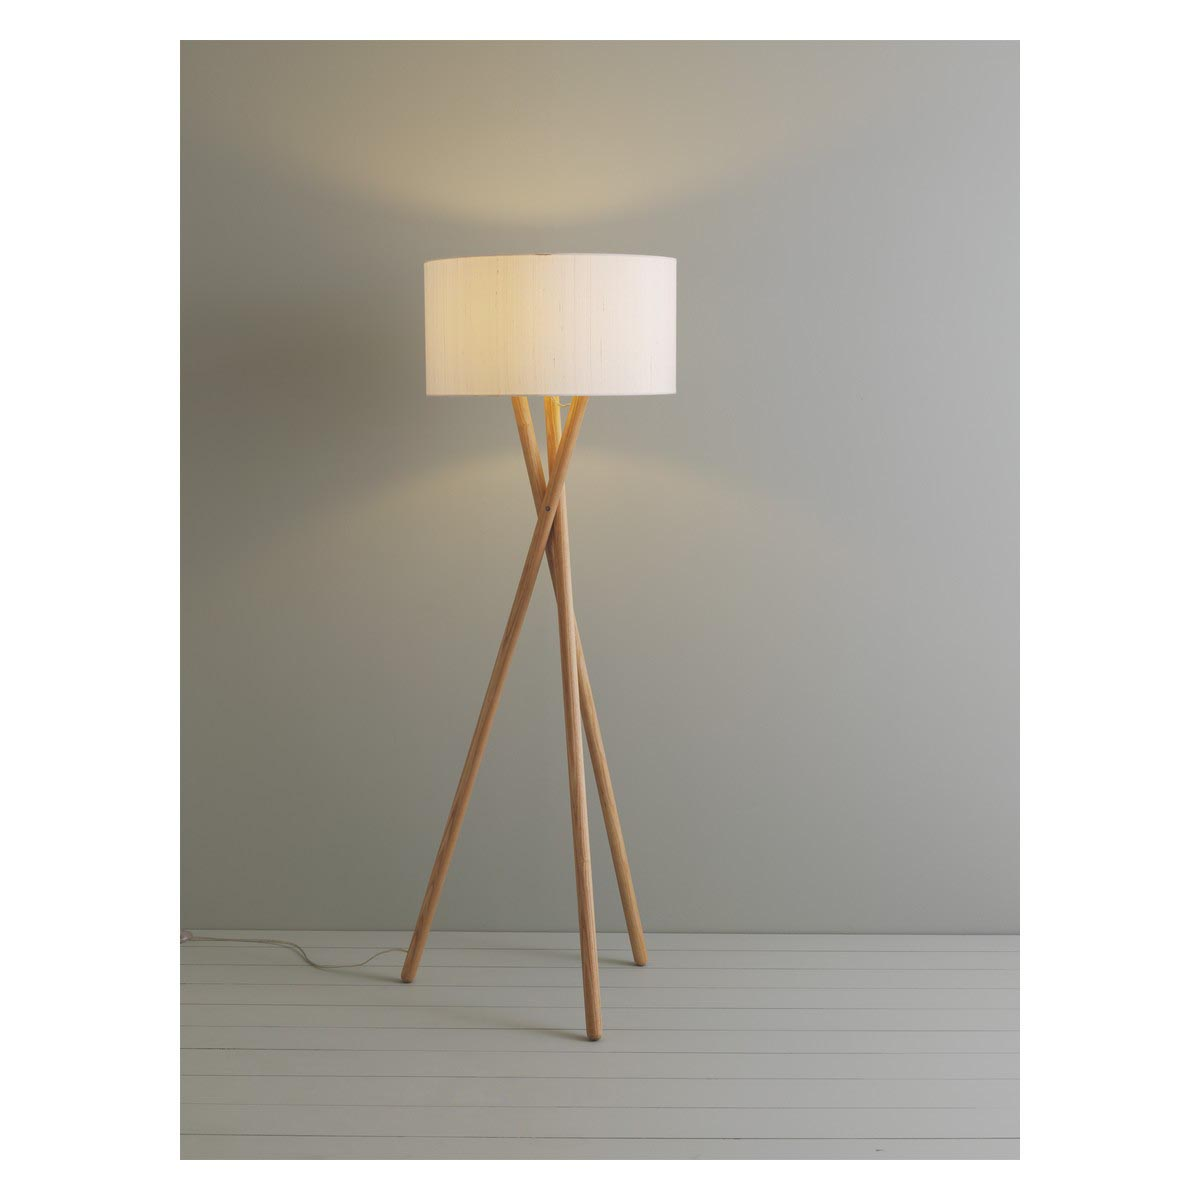 Floor Lamp Wooden Wooden Tripod Floor Lamps Light Fixtures Design Ideas